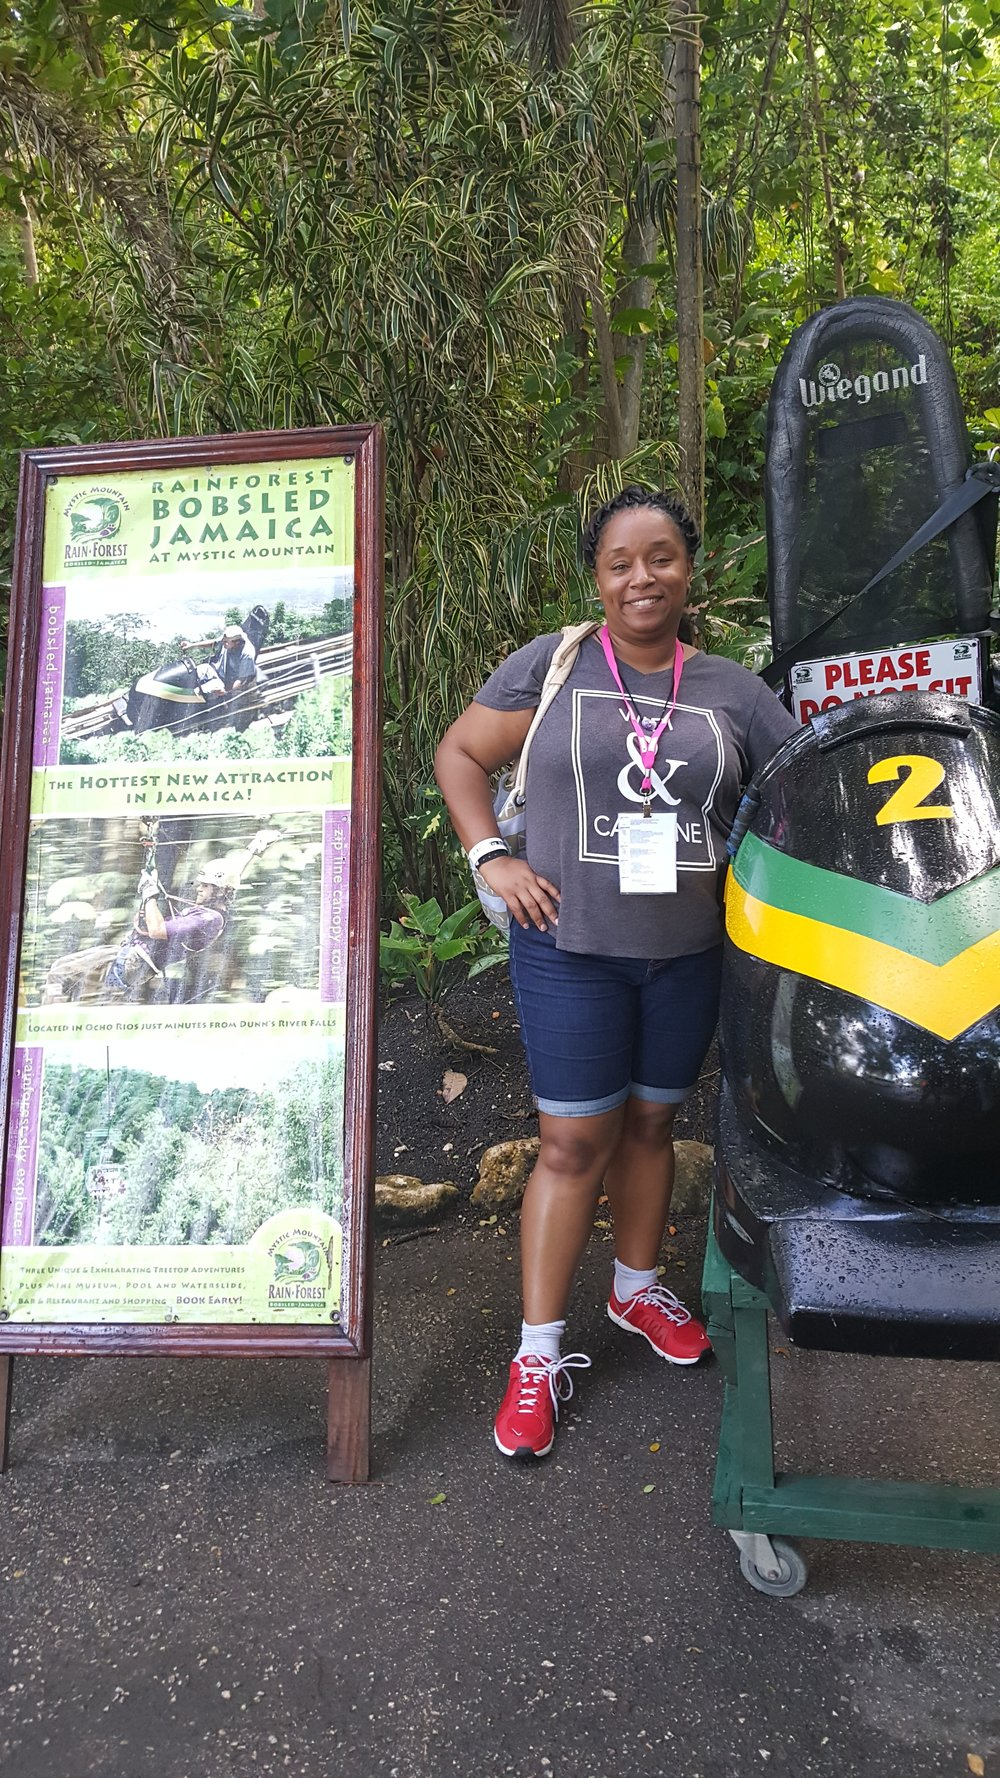 Me in Jamaica conquering my fear of heights after I rode a bobsled thru a mountain!